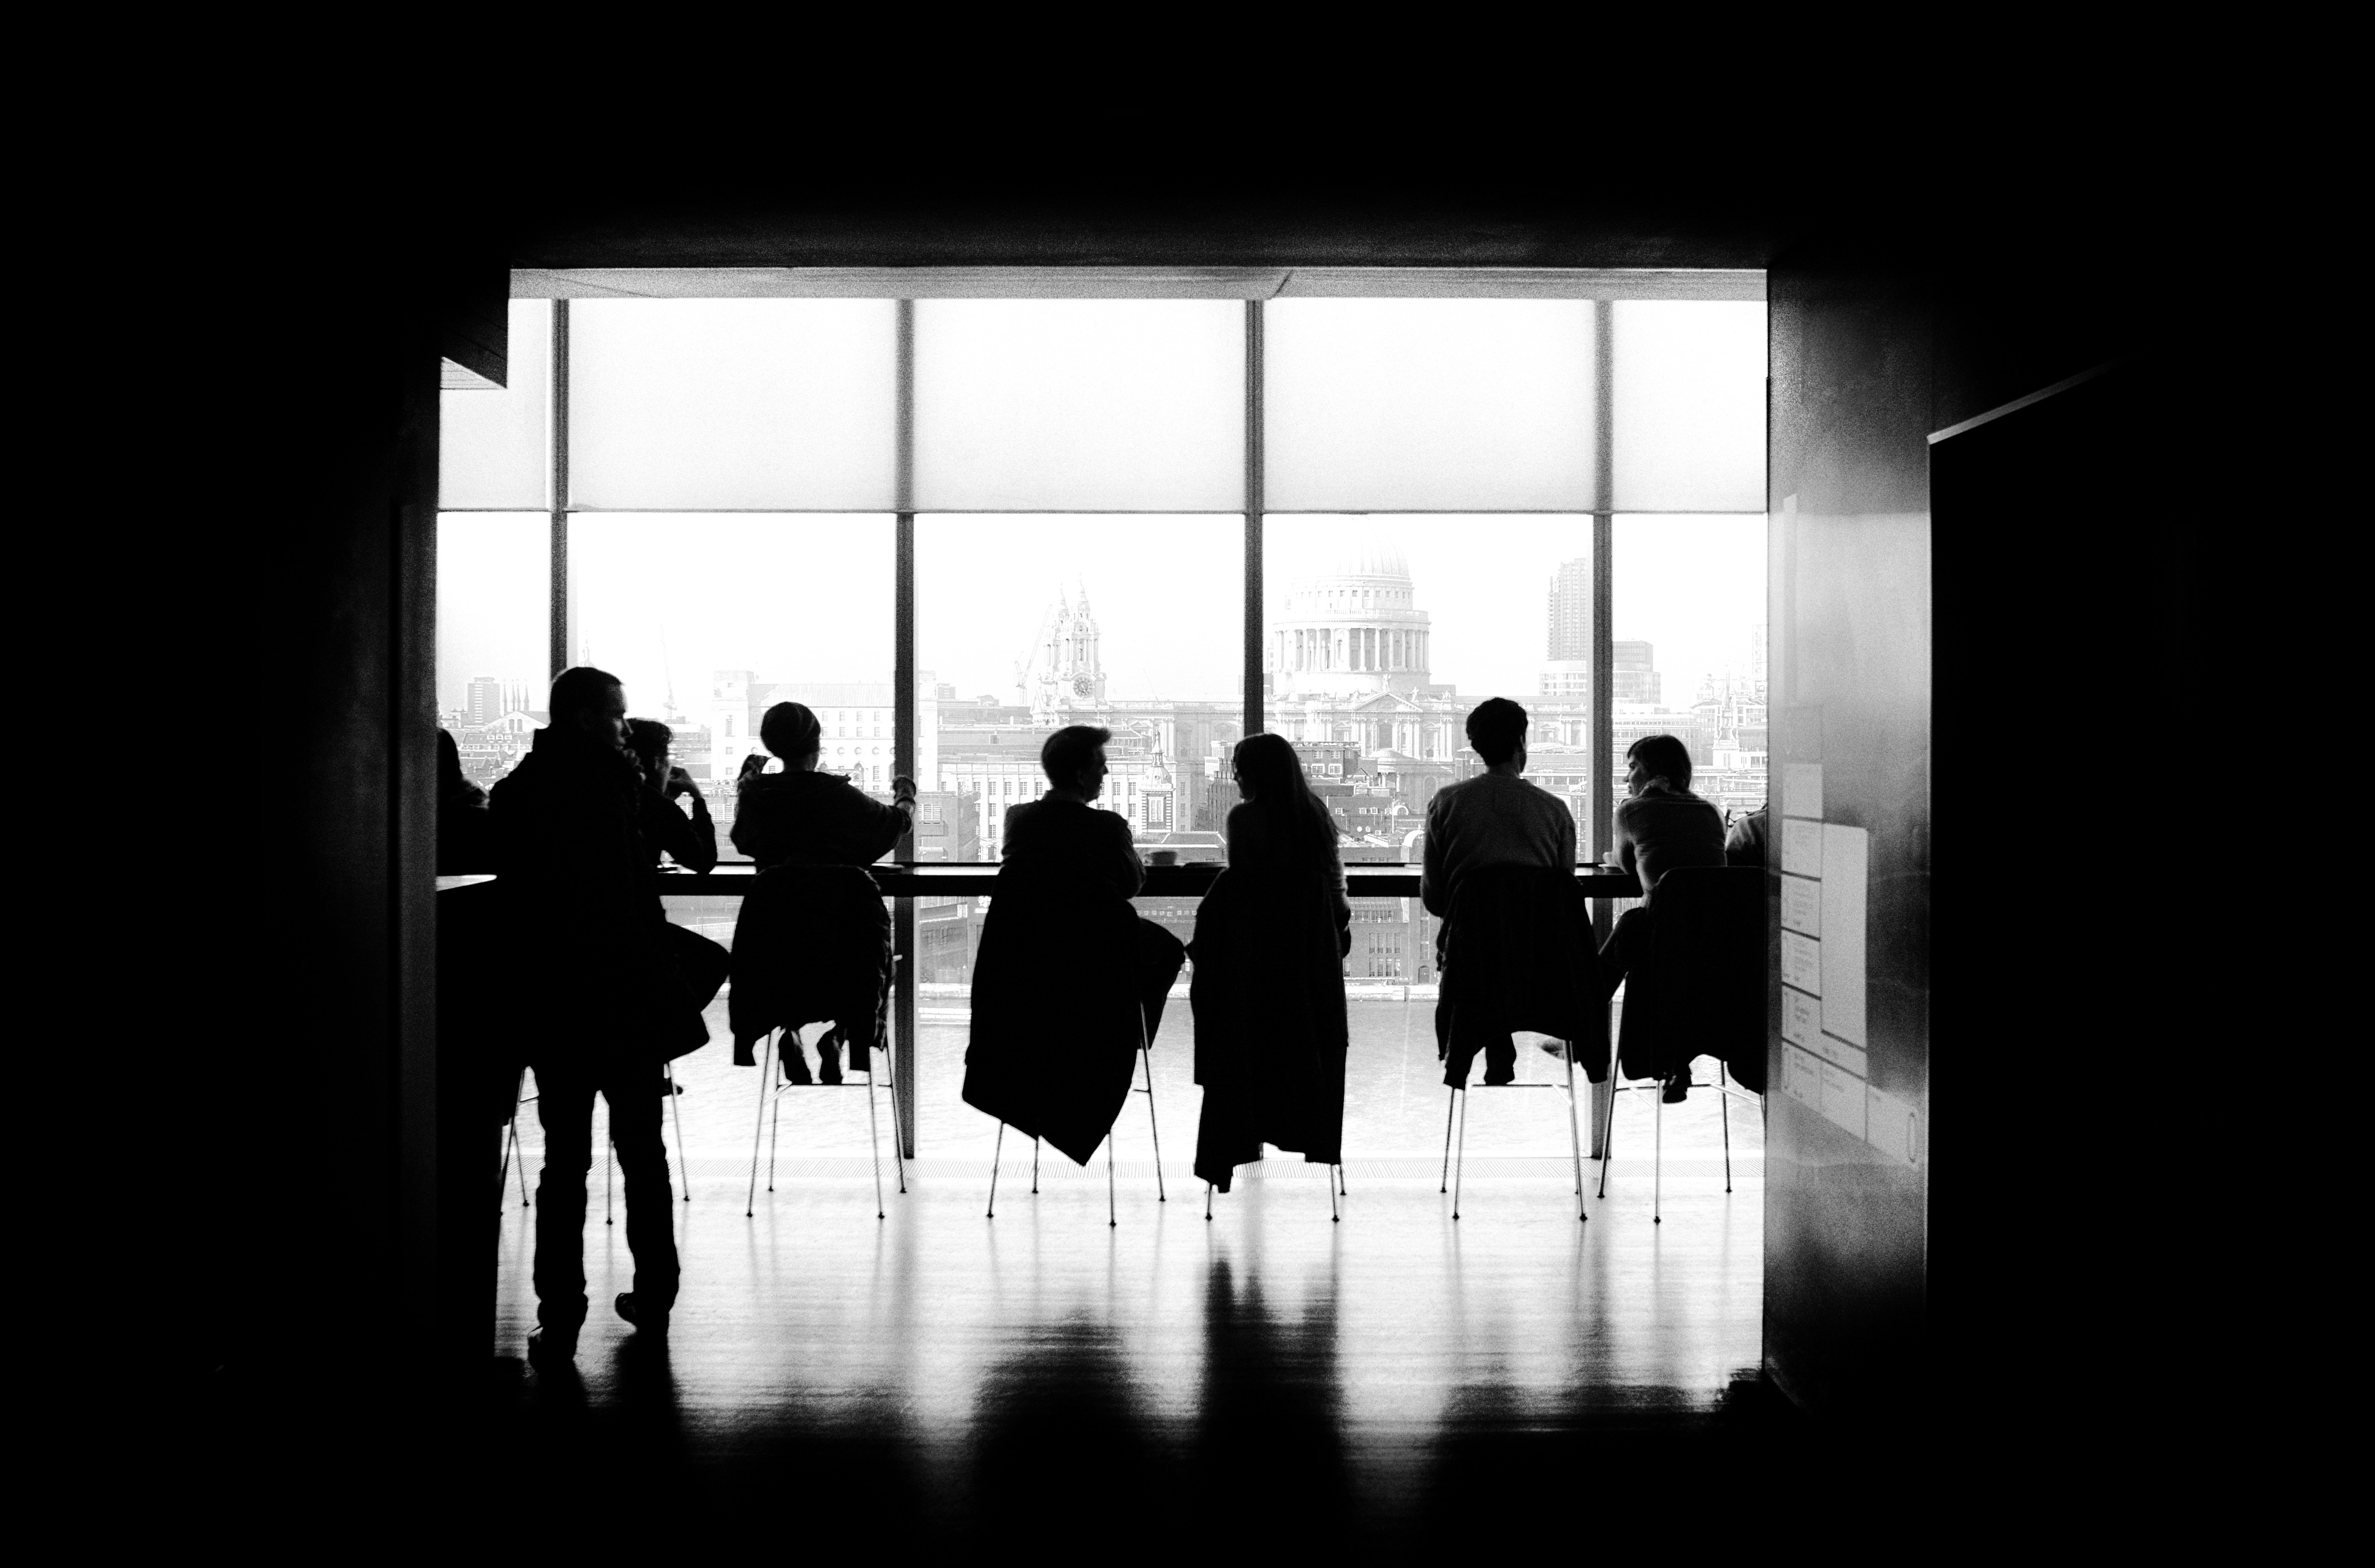 Black and white photo with people seated in a meeting room, set against a full window pannel looking out onto the city